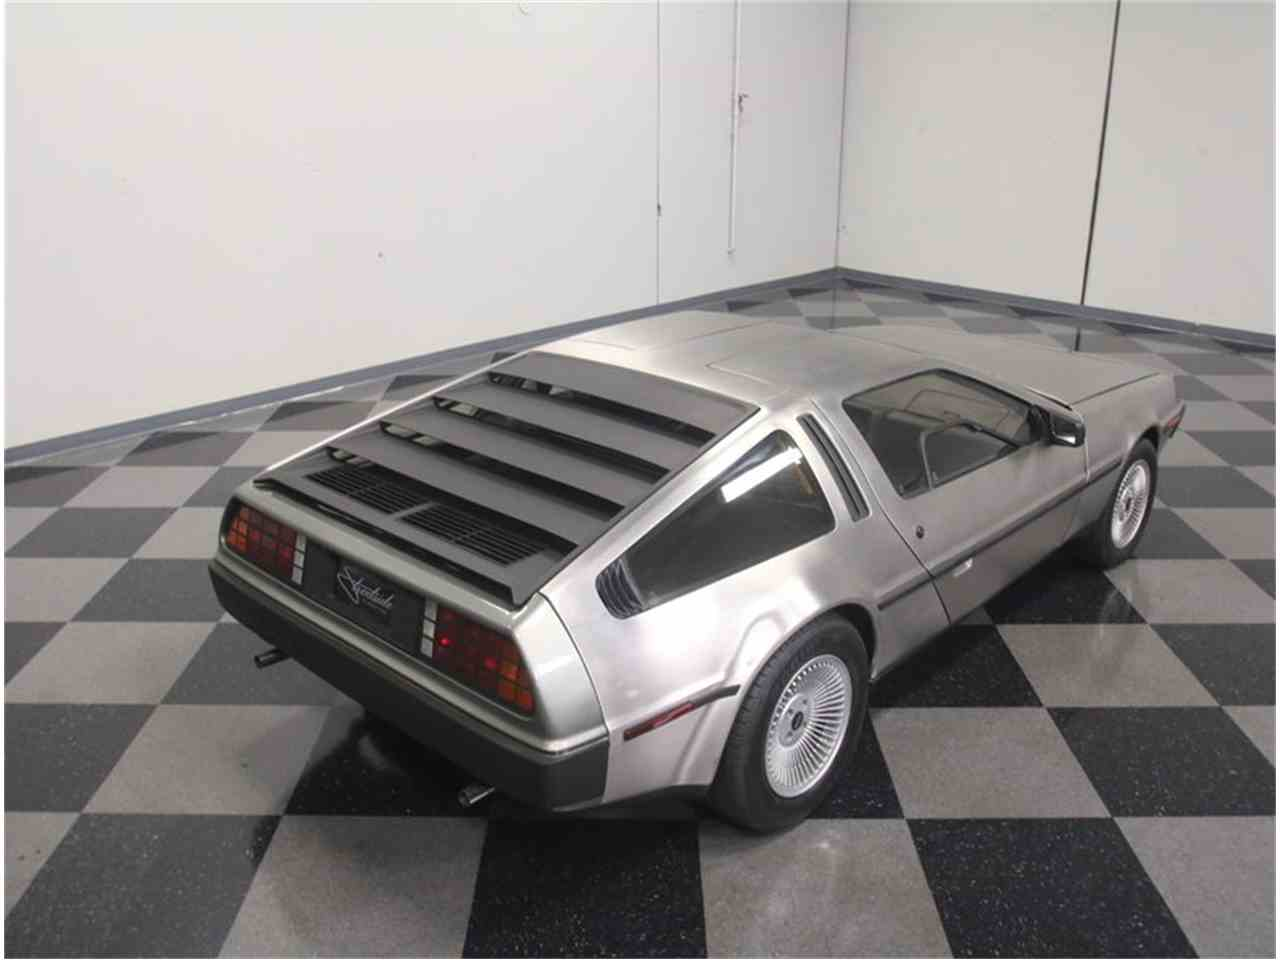 Large Picture of 1981 DeLorean DMC-12 - $49,995.00 Offered by Streetside Classics - Atlanta - MGXM